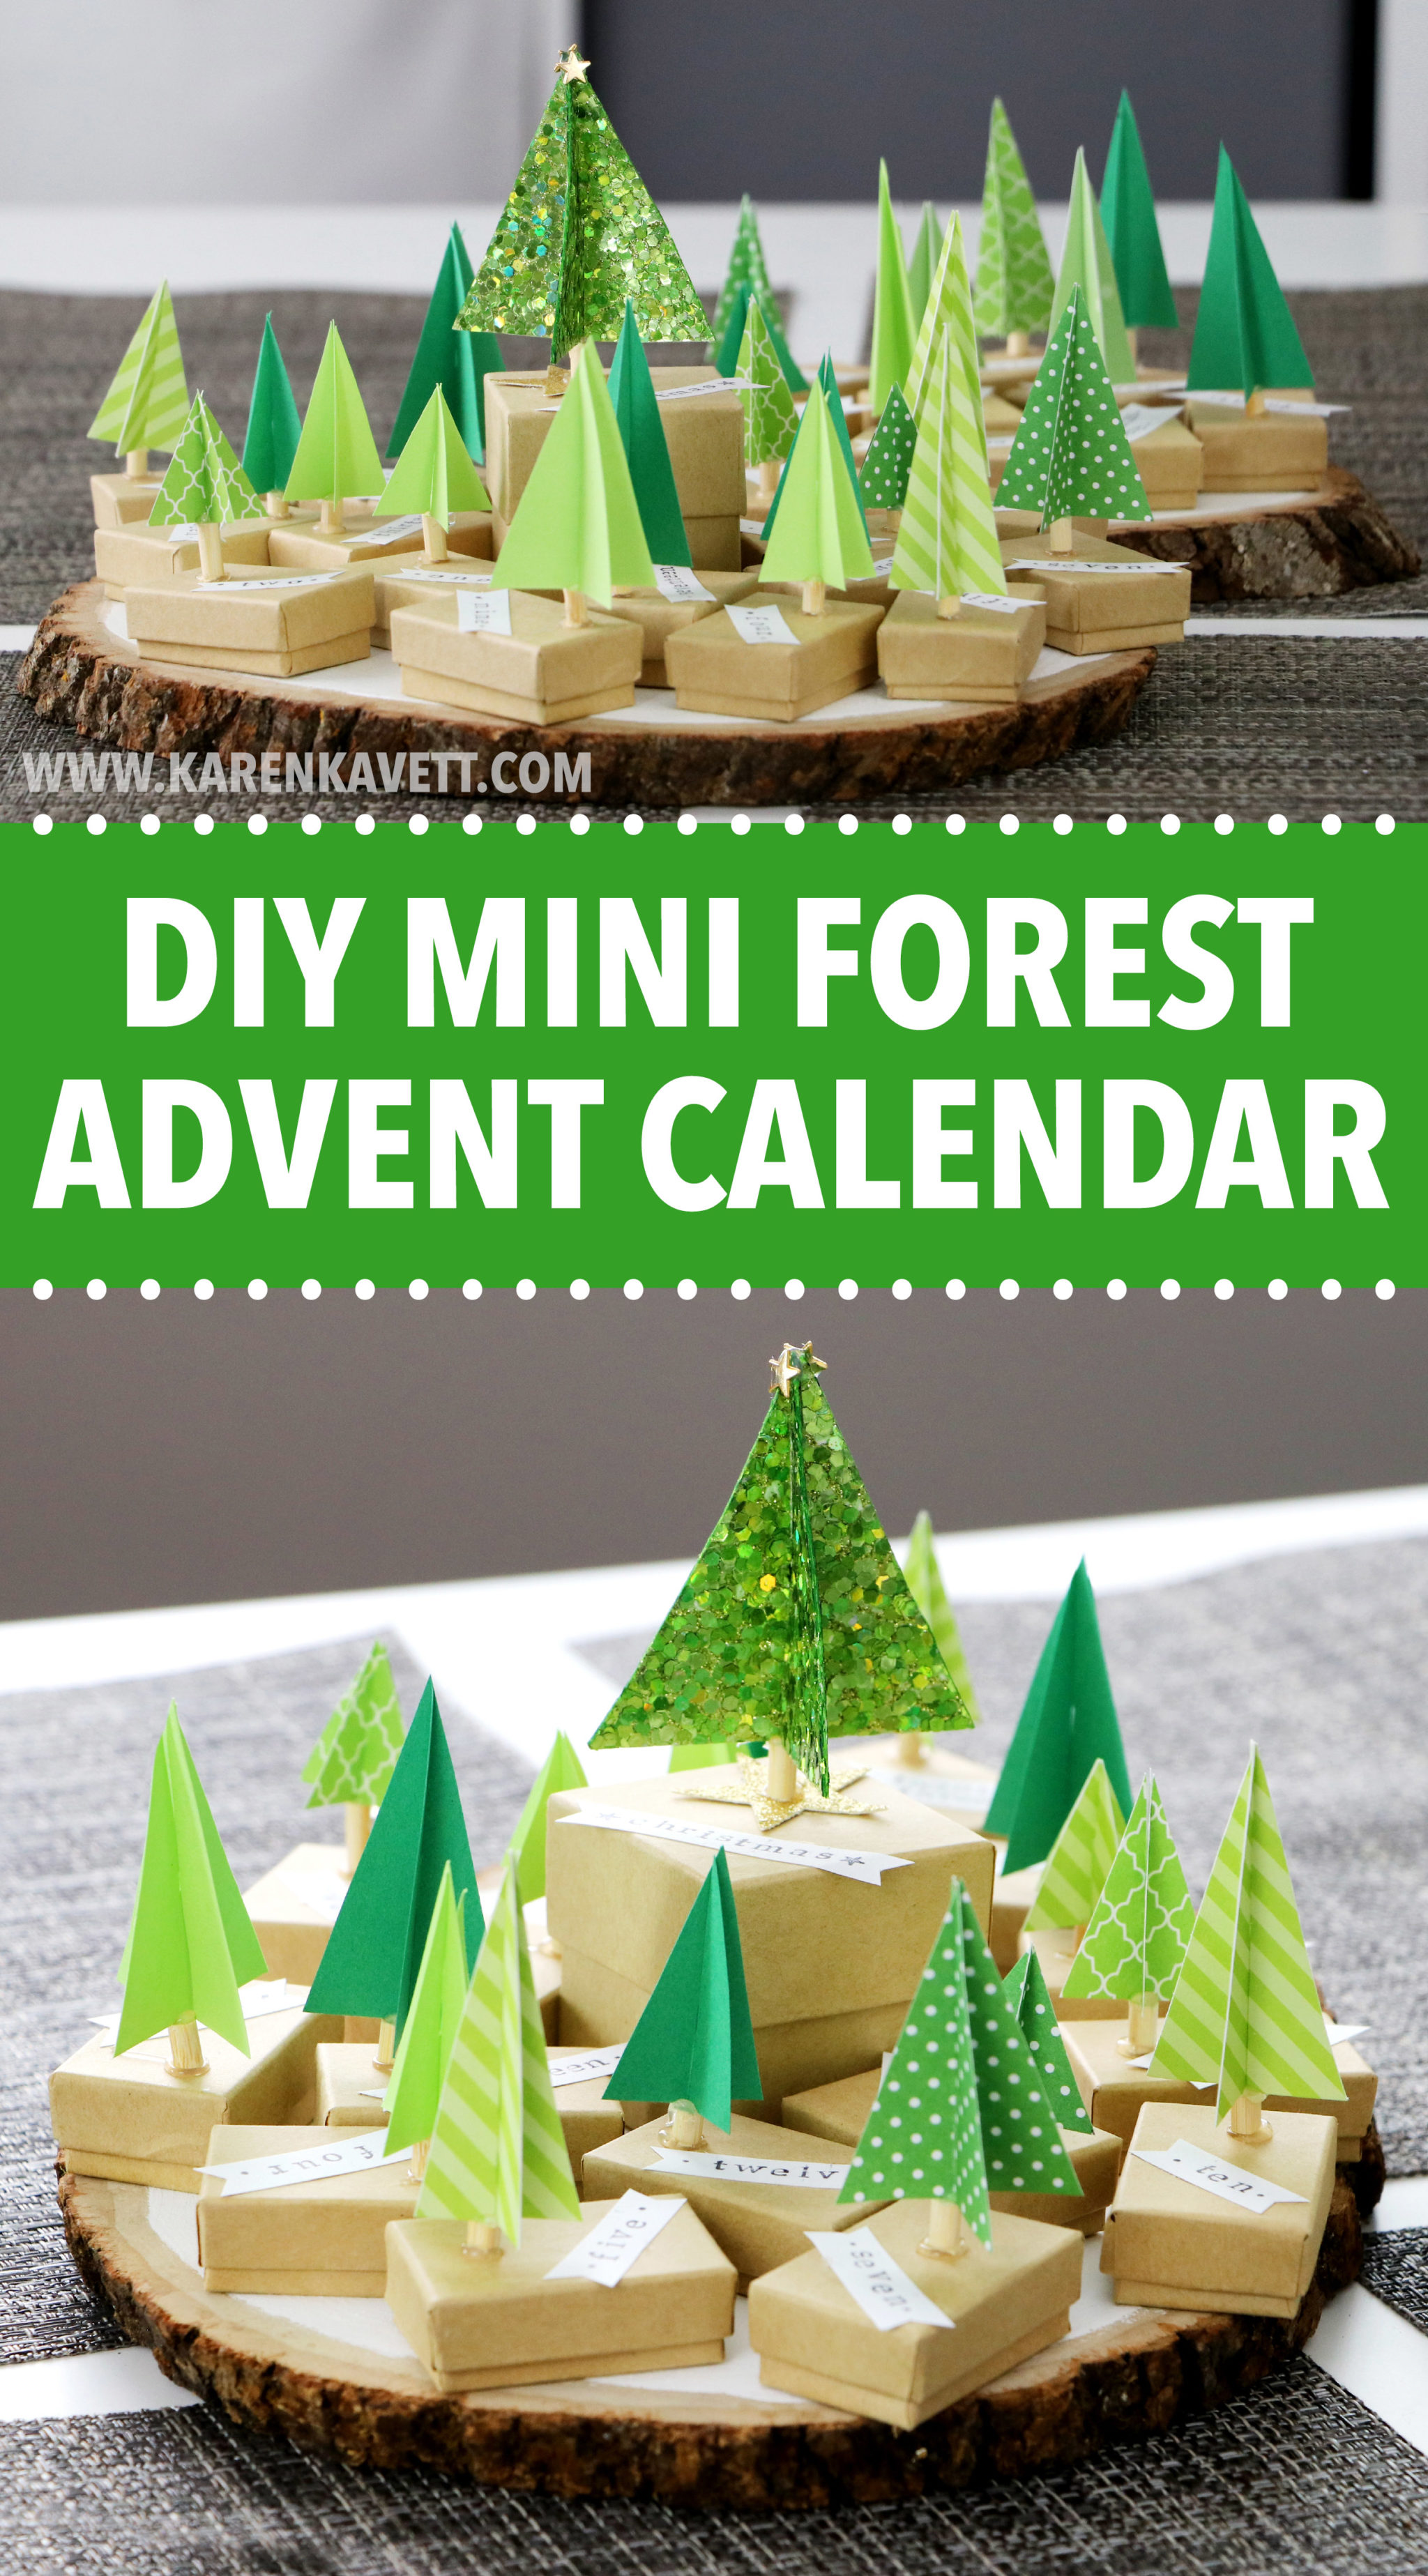 Calendar Advent Diy : Diy paper advent calendar for christmas karen kavett